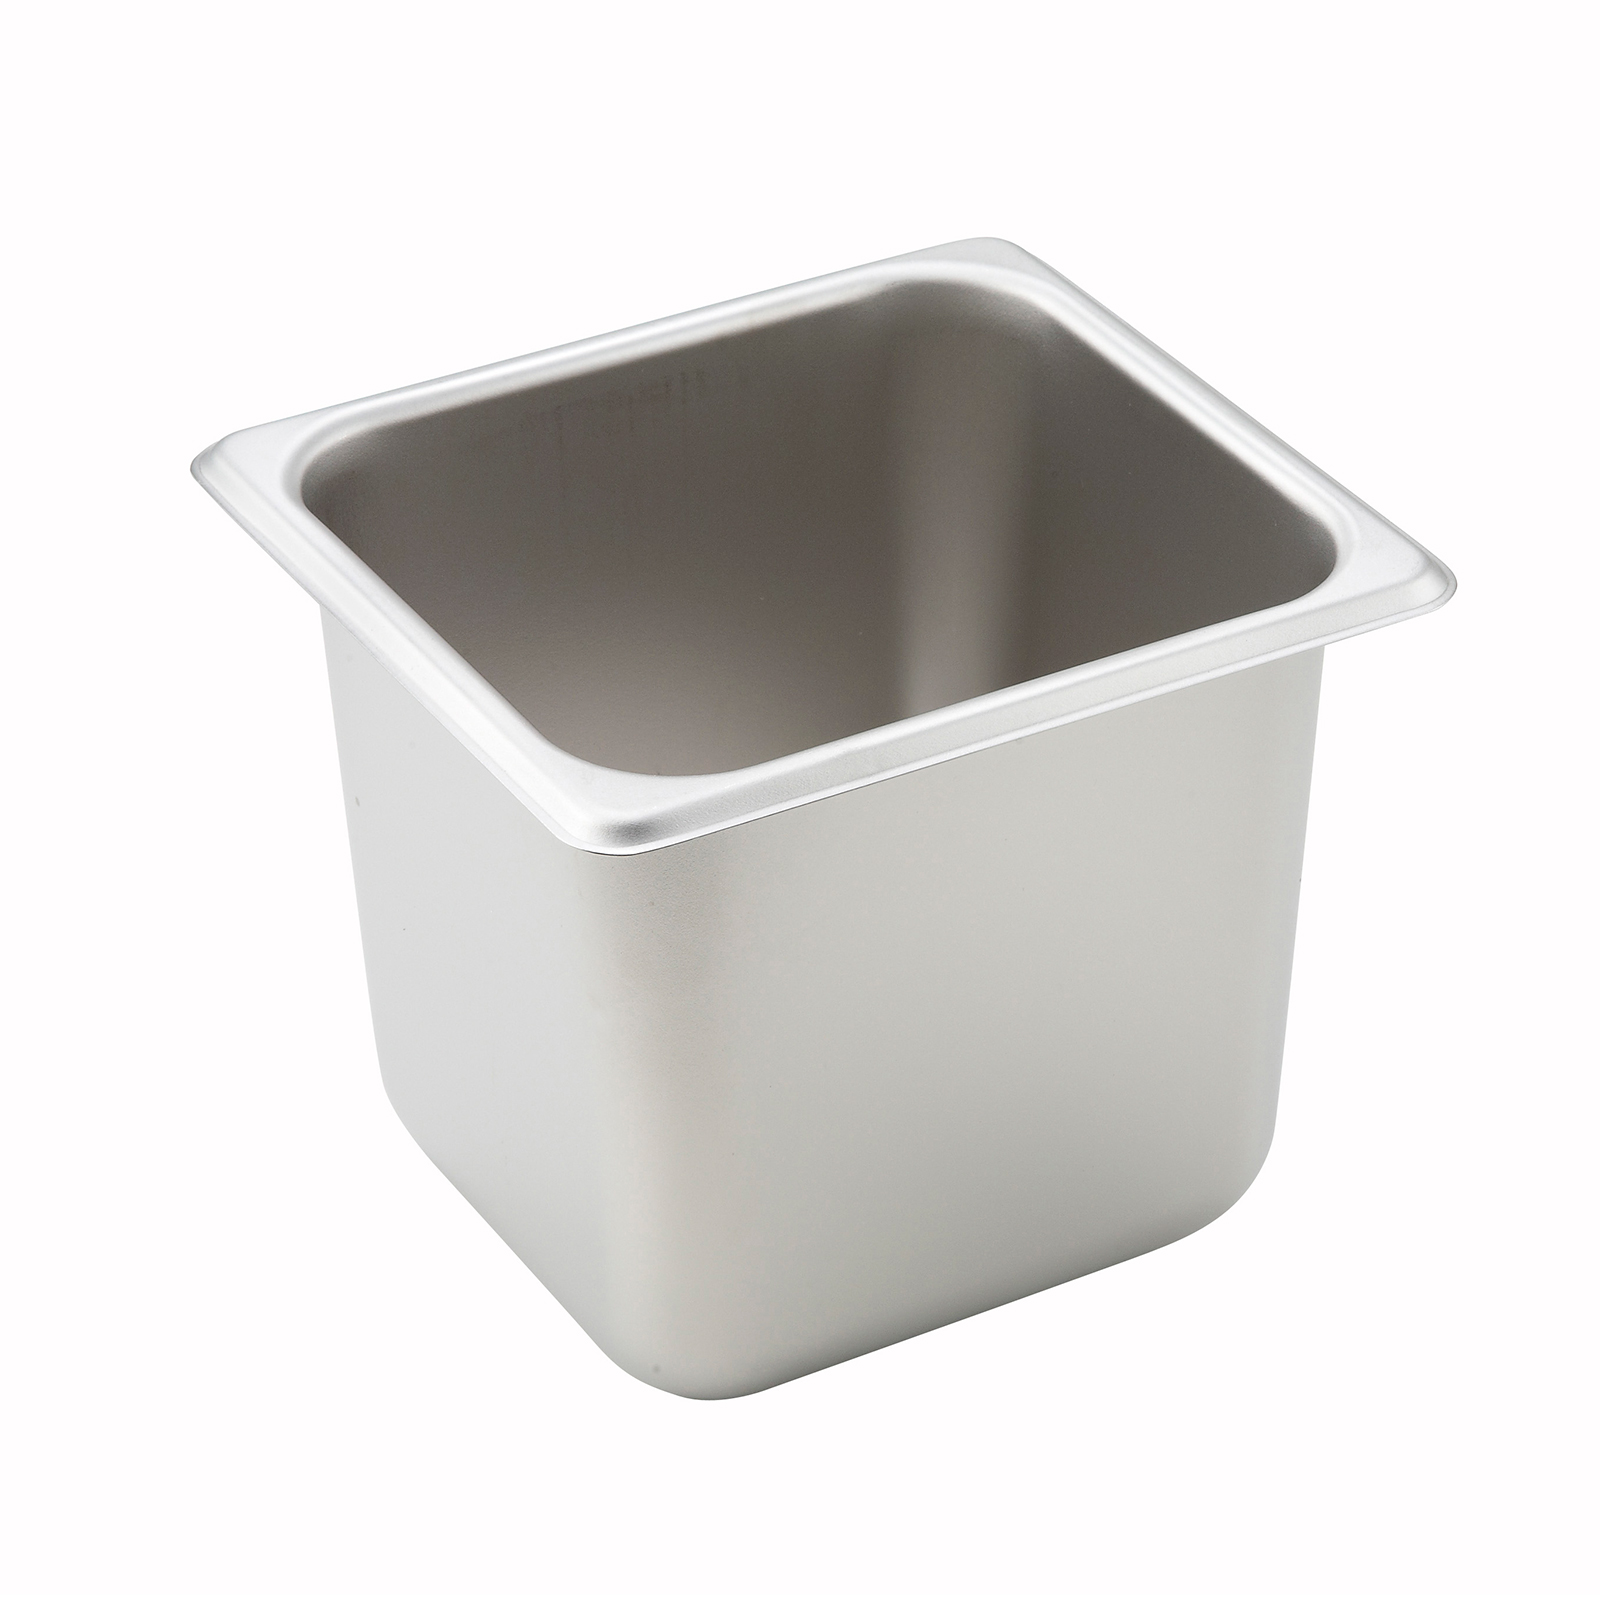 Winco SPS6 steam table pan, stainless steel